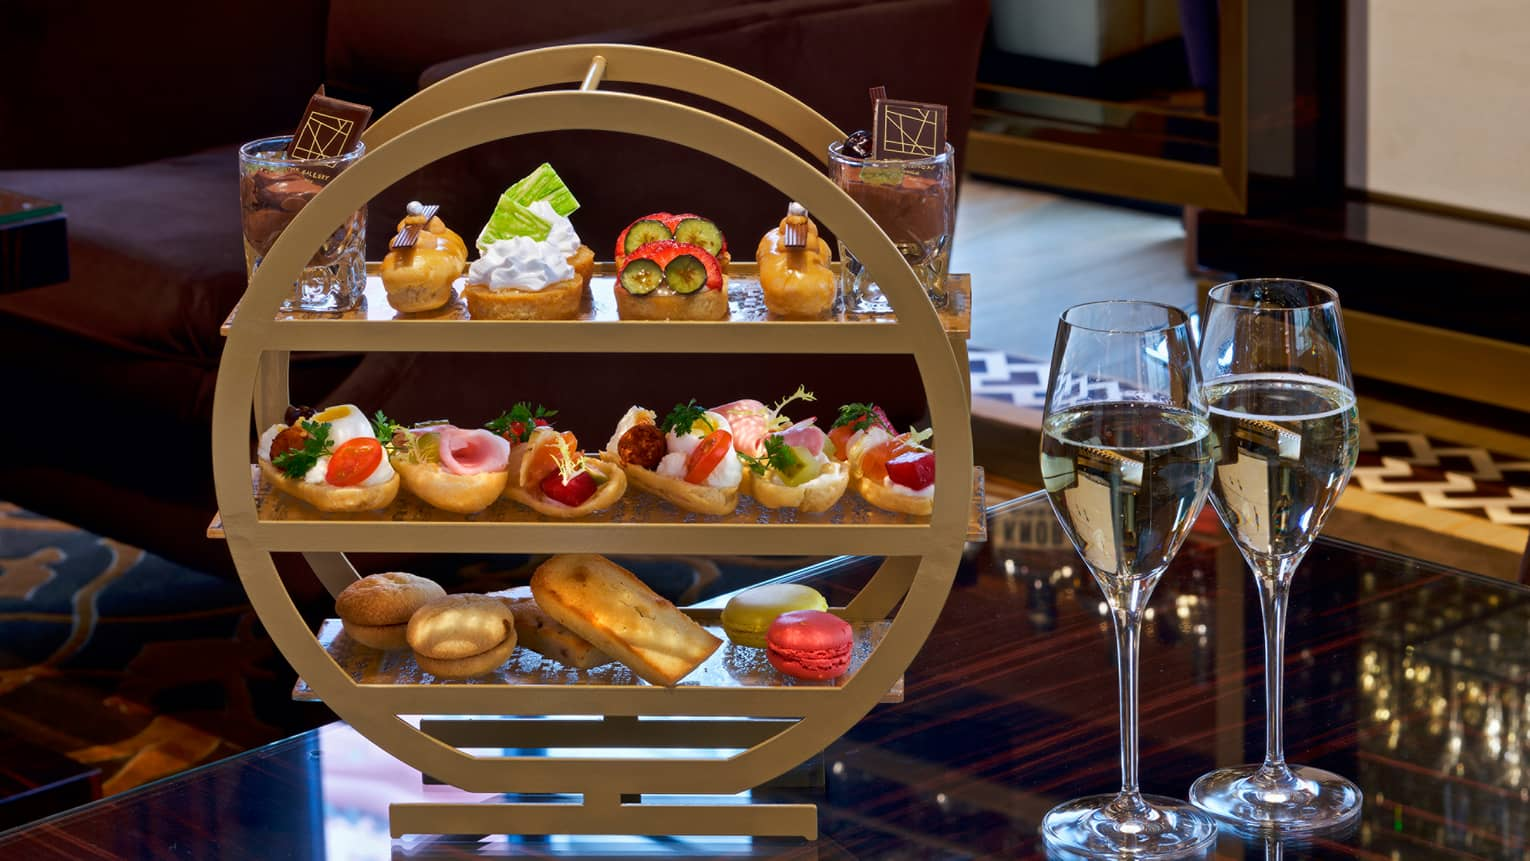 Afternoon tea three-tiered tray with selection of sandwiches and desserts, two glasses of white wine